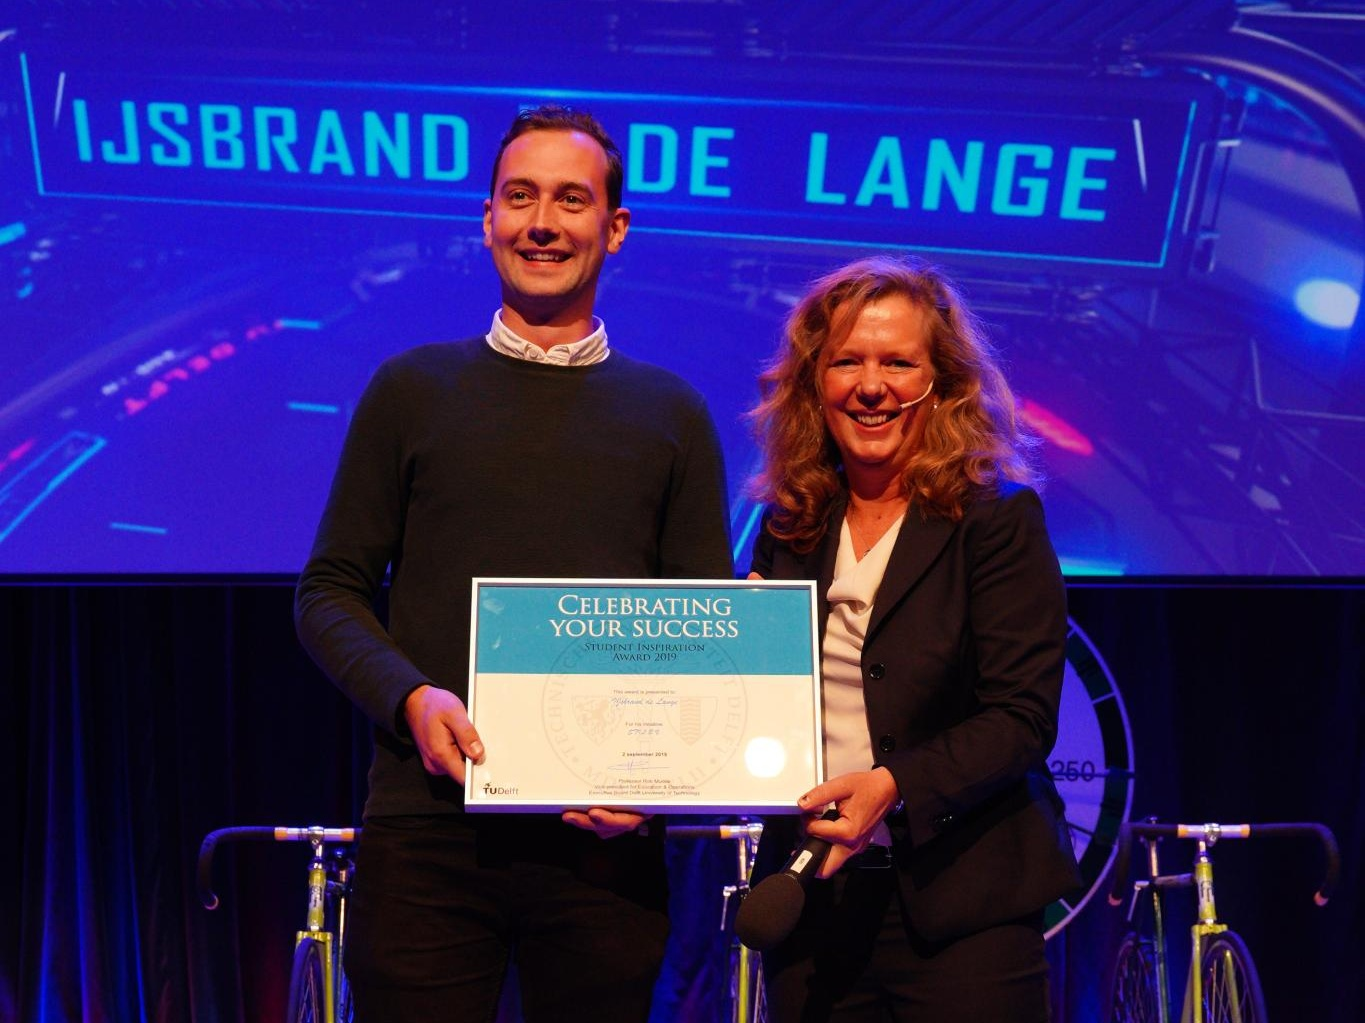 Inspirational Award 2019 - September 2019At the opening ceremony of the academic year, IJsbrand received the Inspirational Award! As former TU Delft student who started a business from his graduation project, he is an inspiration to new students.